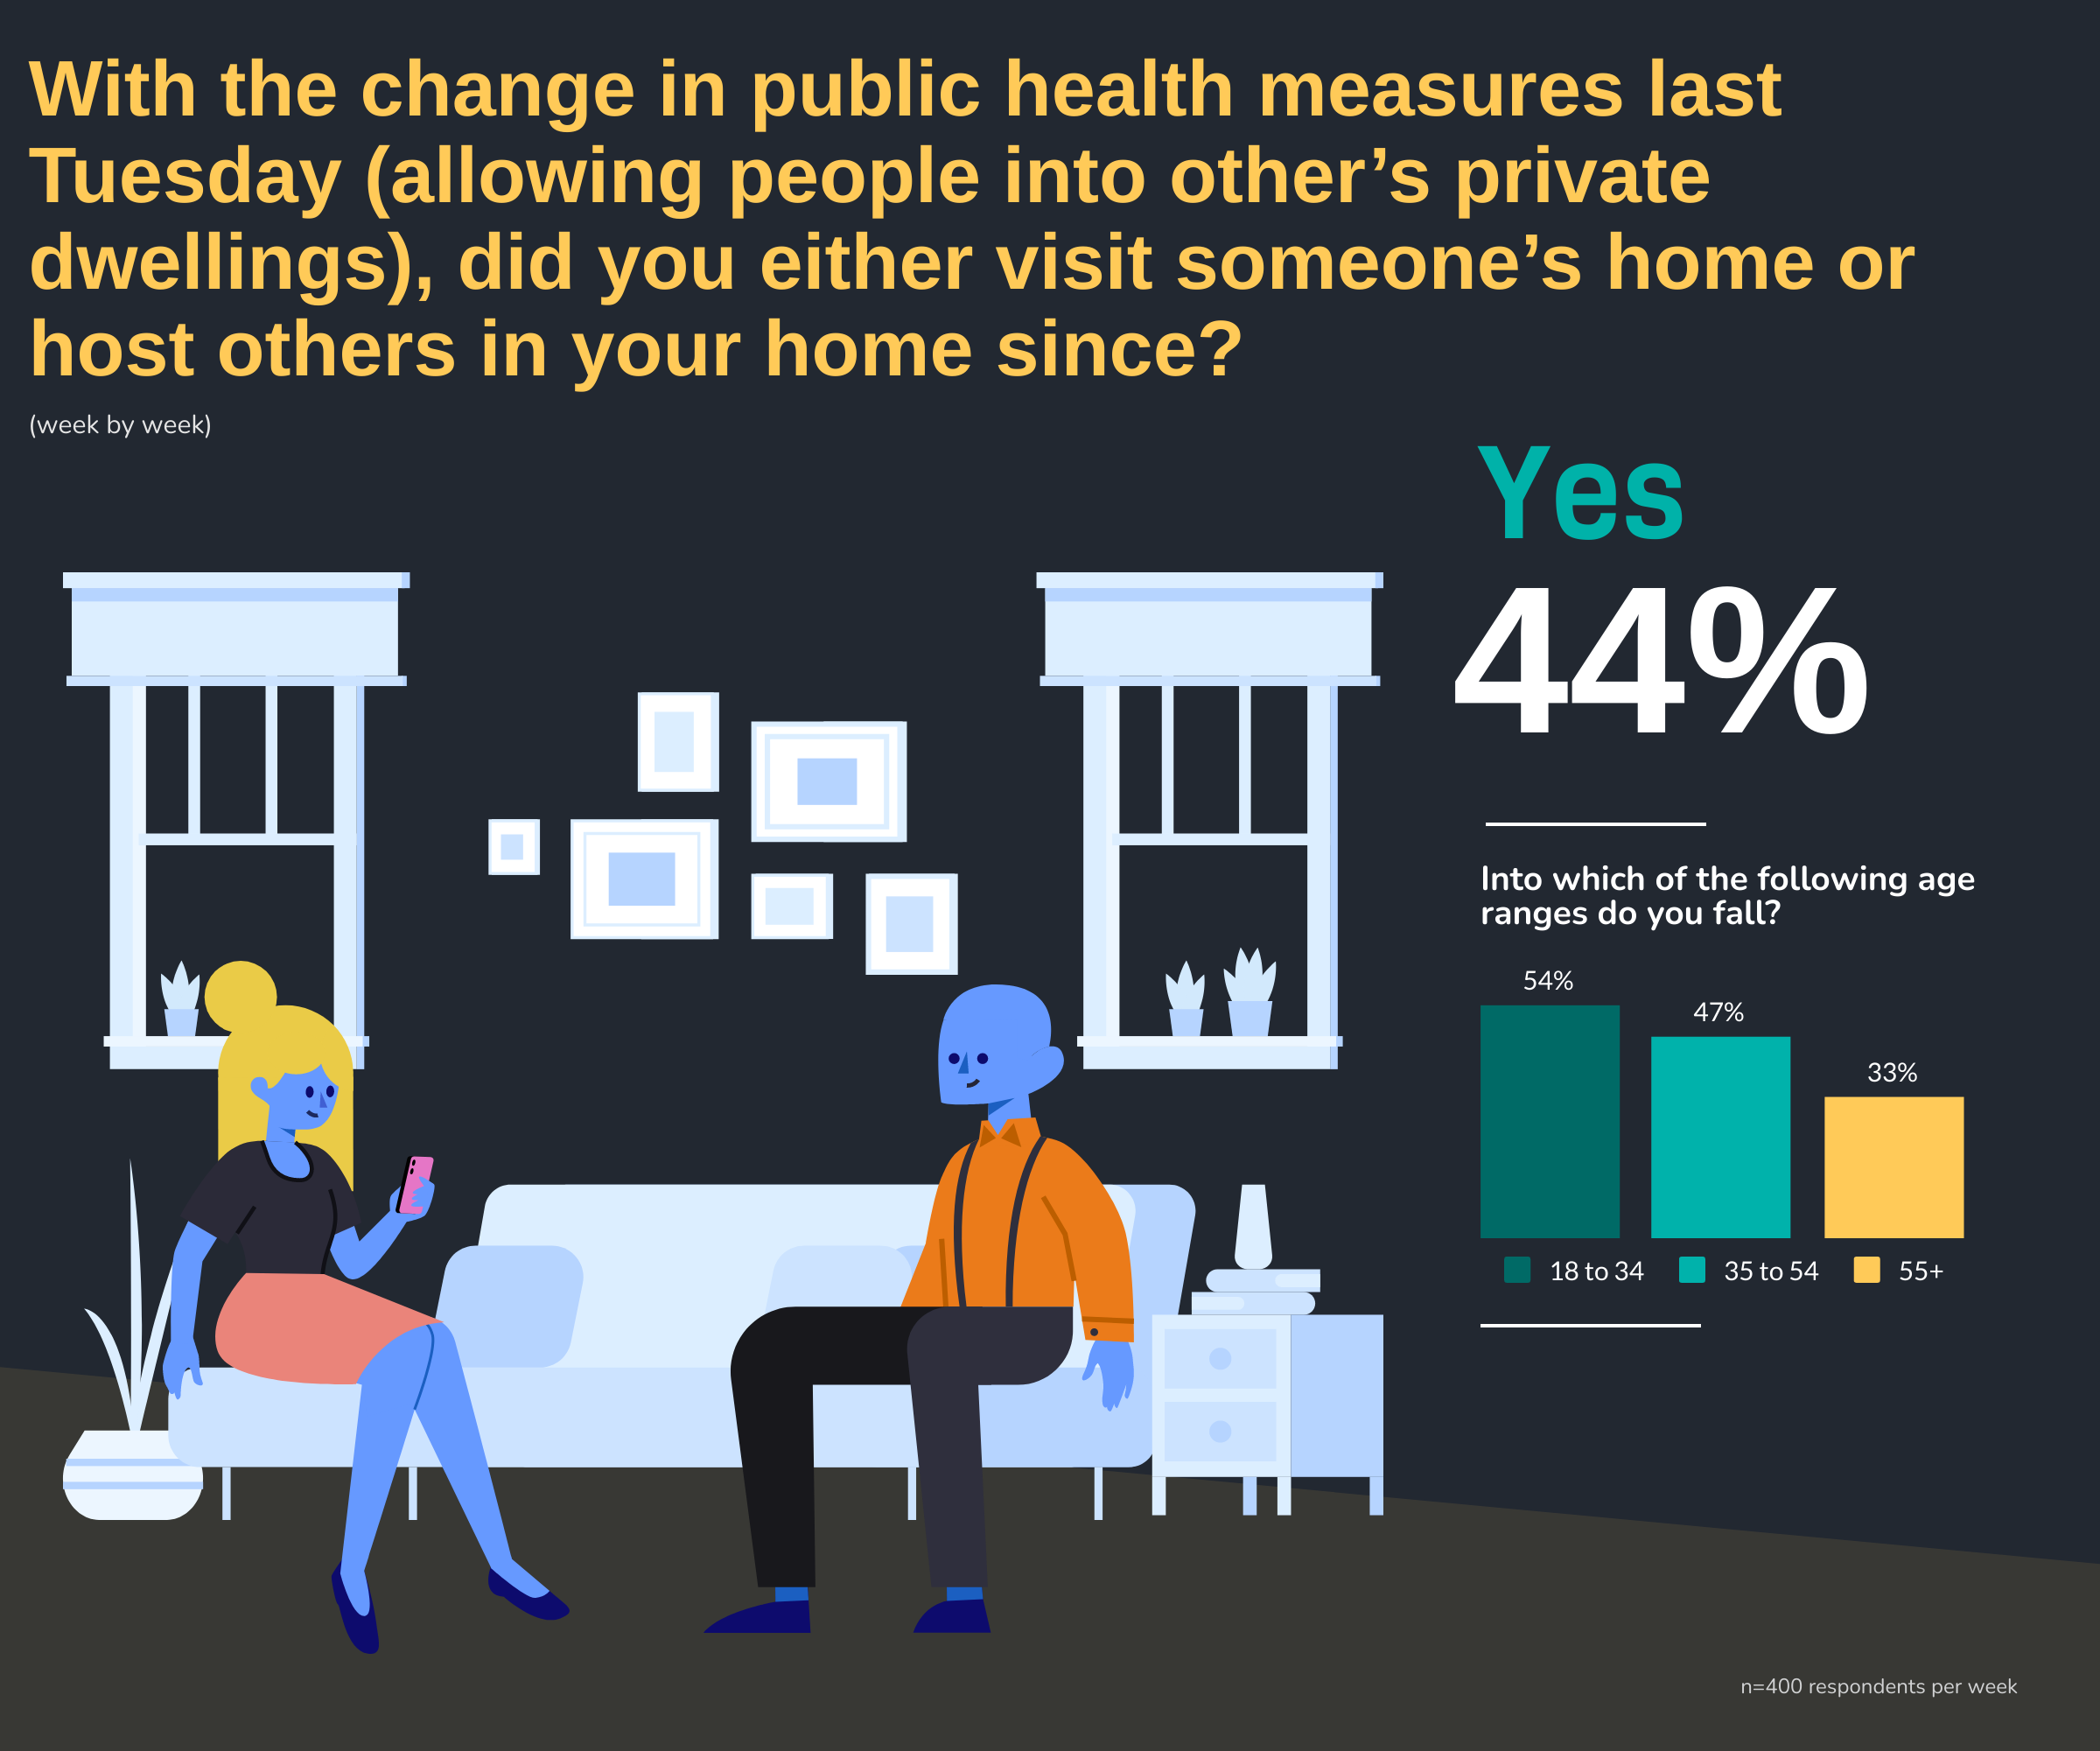 With the change in public health measures last Tuesday allowing people into other's private dwellings, did you either visit someone's home or host others in your home since? by S1: Into which of the following age ranges do you fall?